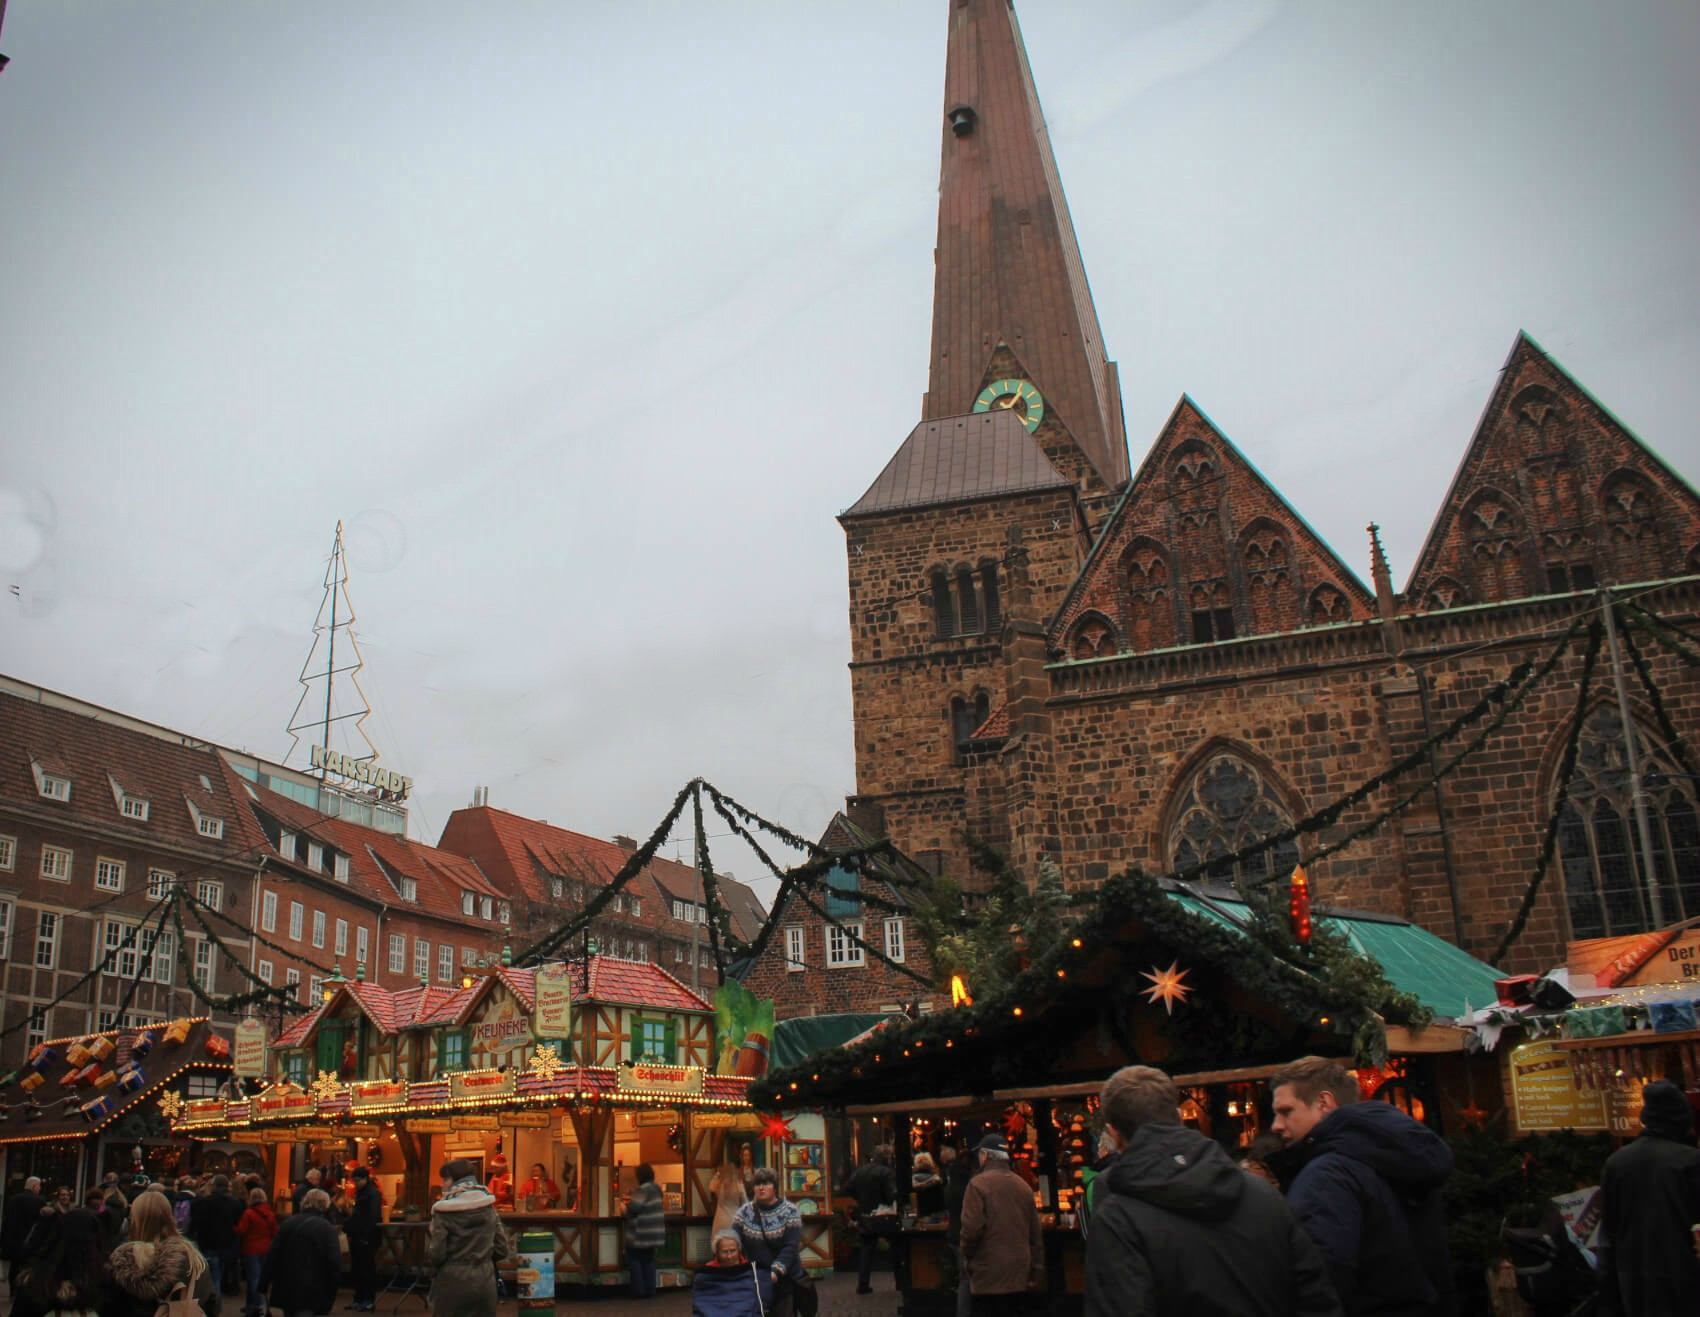 Bremen, Germany in the winter features a stunning Christmas Market surrounded by gorgeous buildings in its fairytale Old Town!